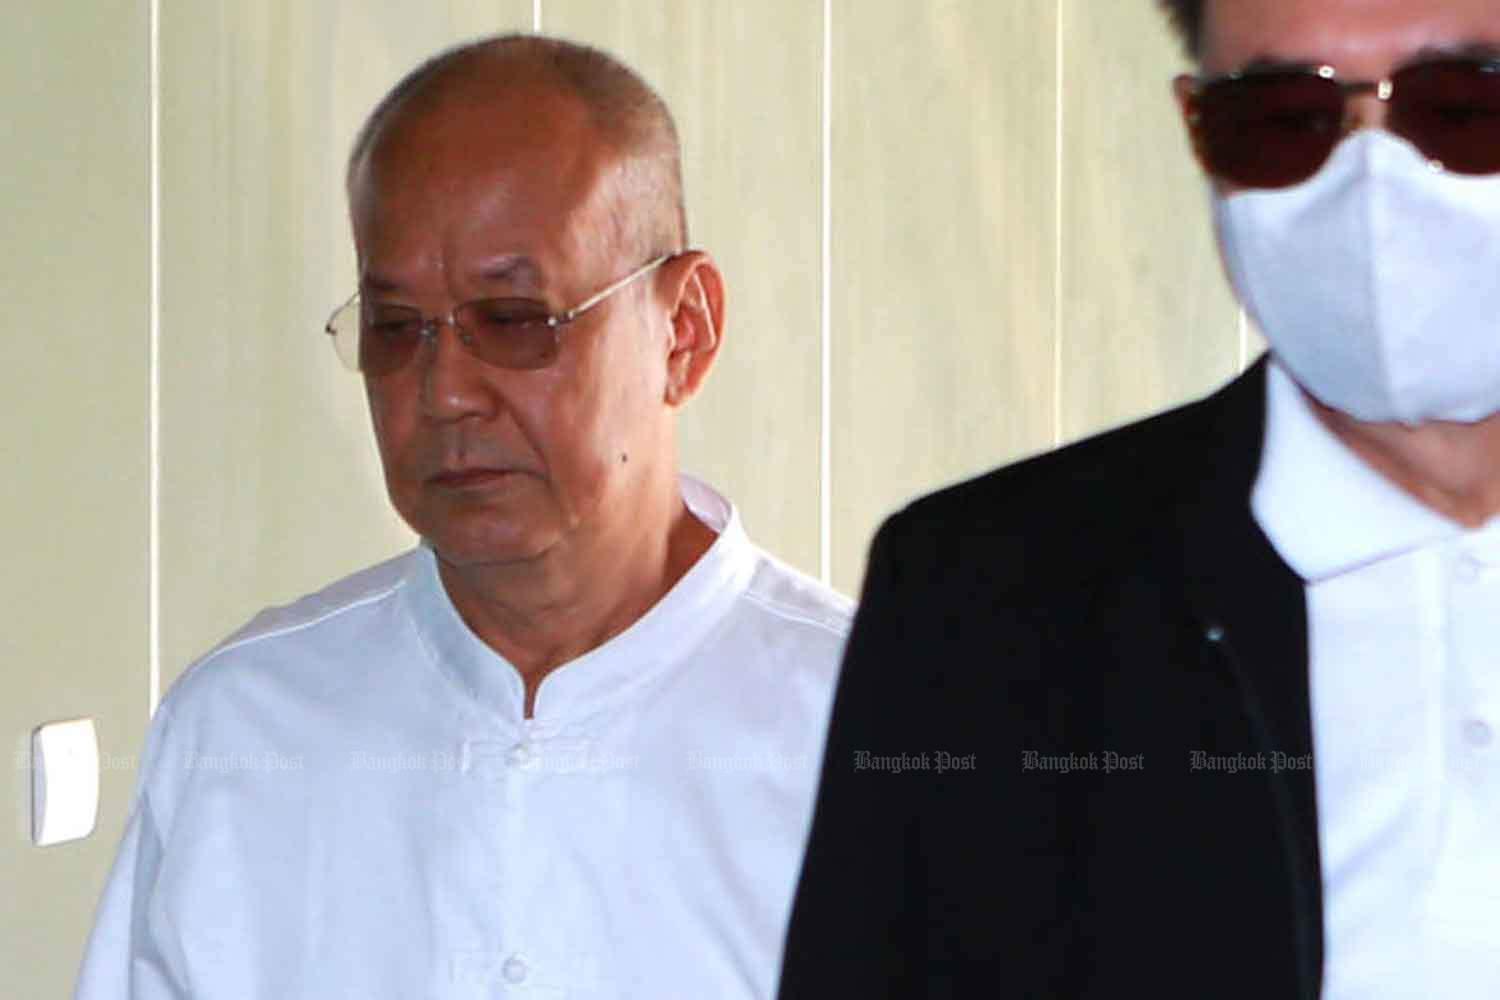 Thongchai Sukkho, 64, former abbot of Golden Mount temple, arrives at the Central Criminal Court for Corruption and Misconduct Cases in Bangkok on Wednesday. (Photo by Somchai Poomlard)